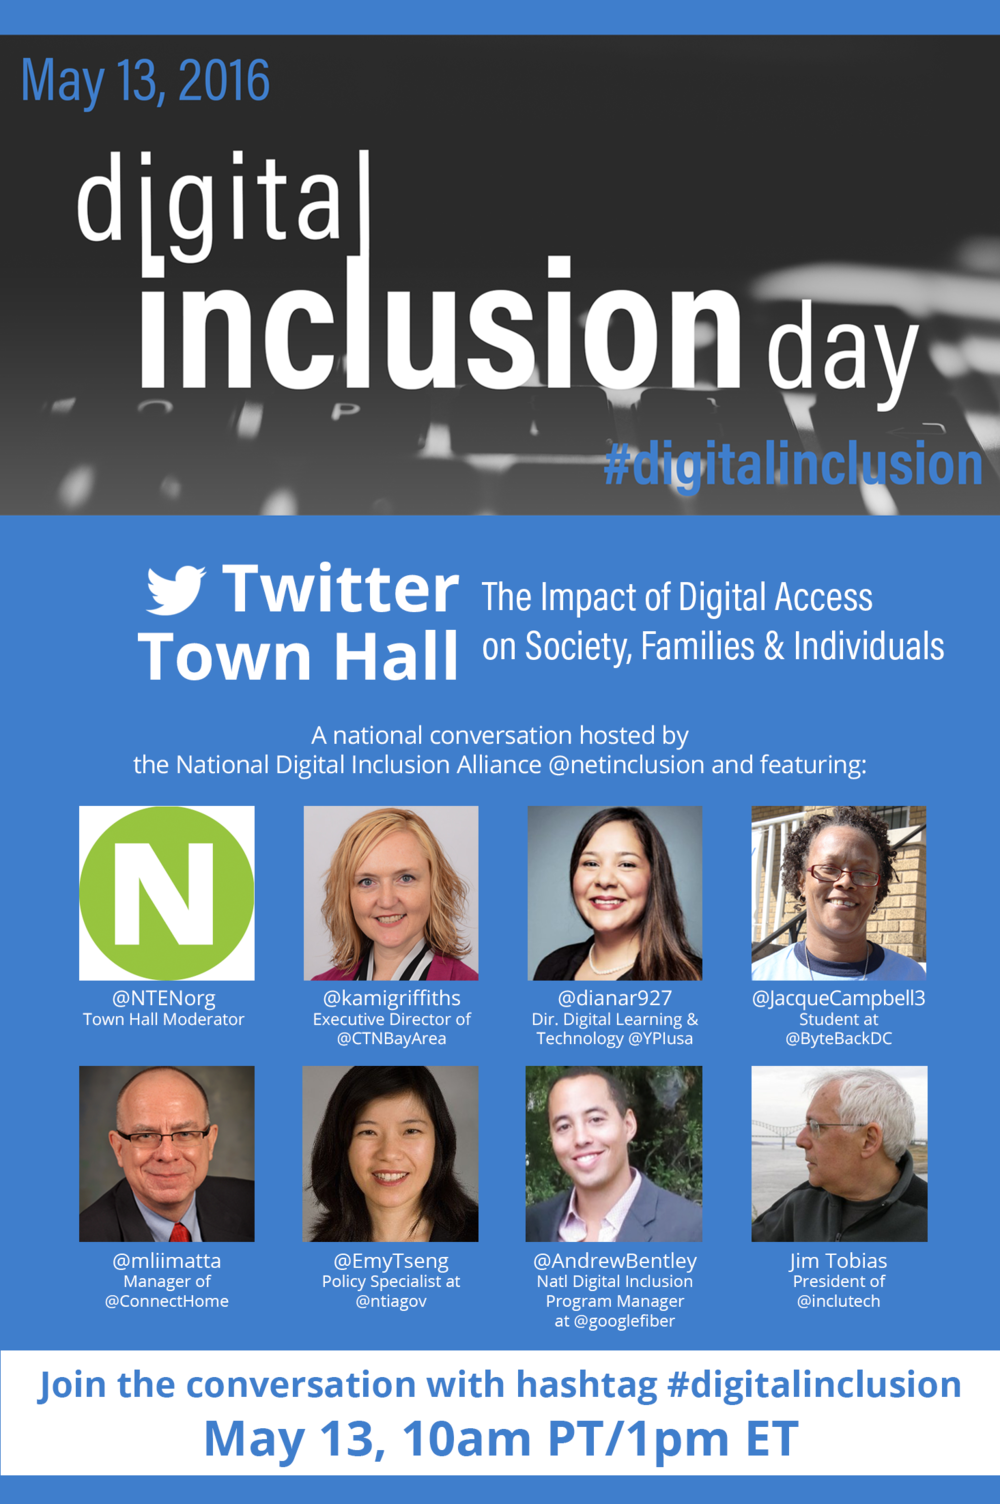 NDIA Twitter Town Hall Flyer